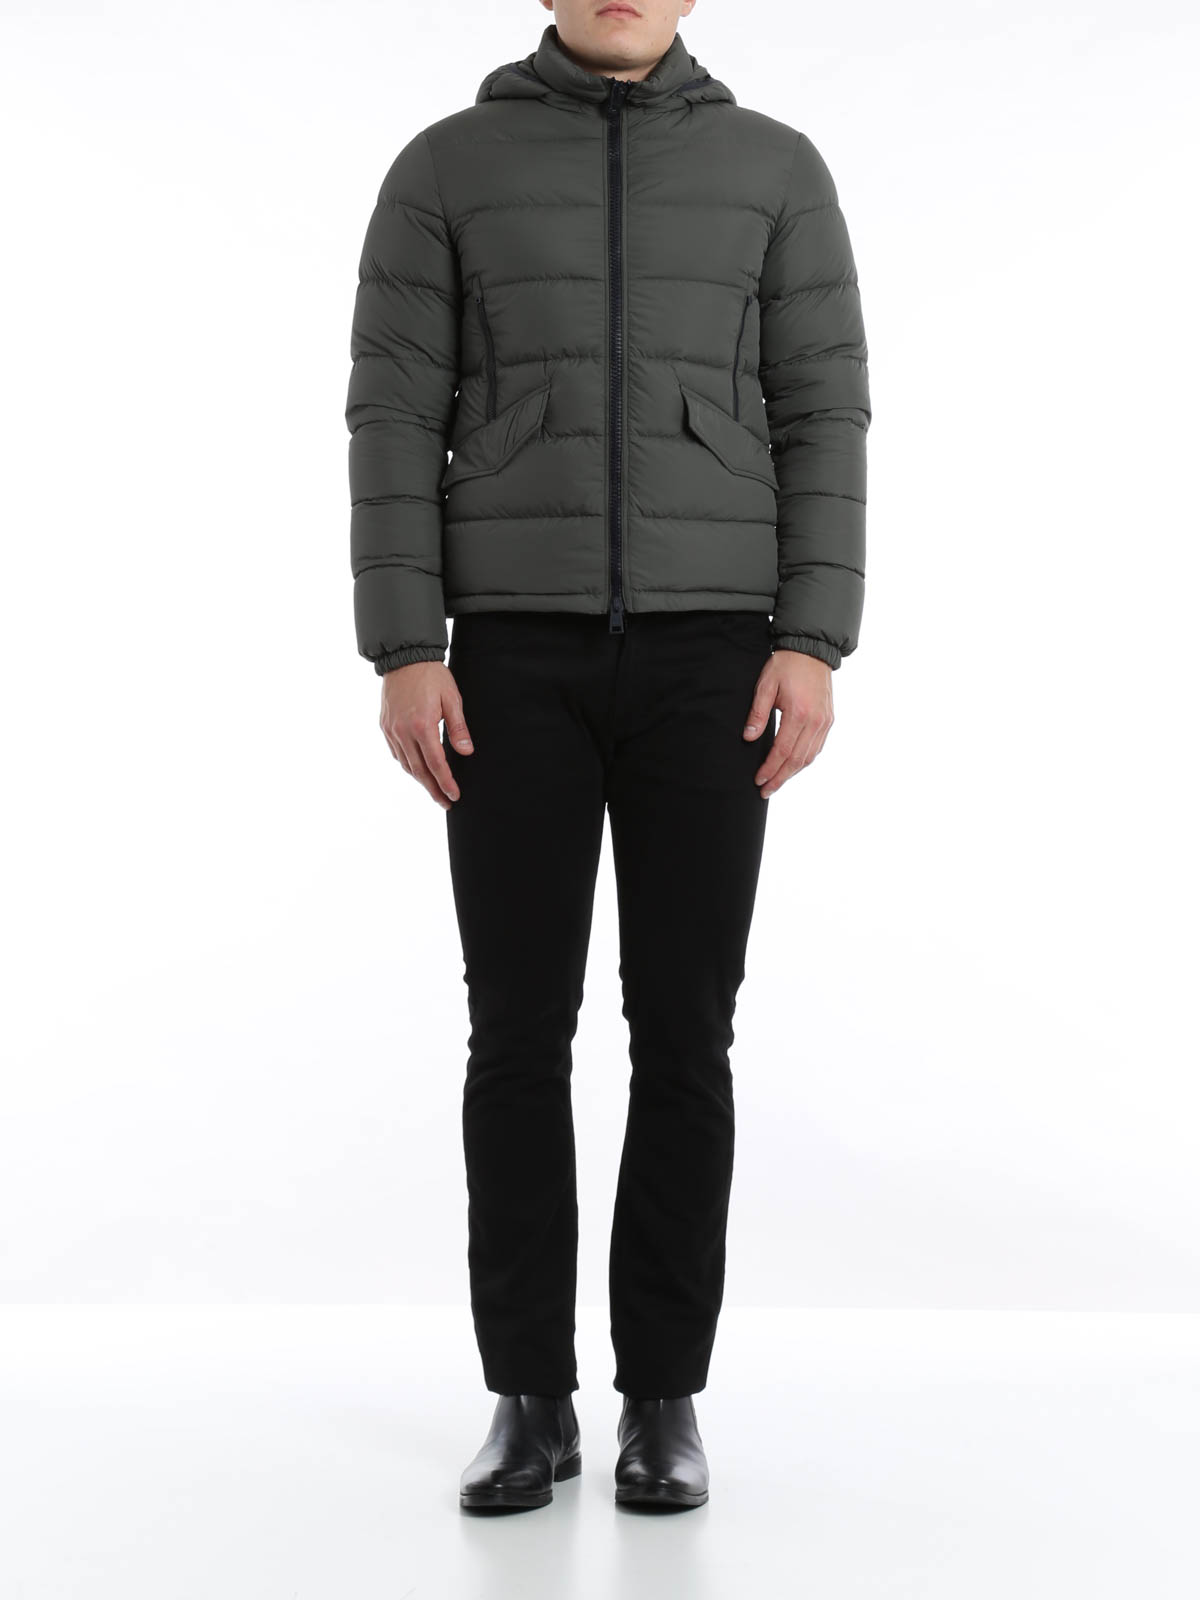 cheaper d4754 d6818 herno-online-padded-jackets-quilted-padded-jacket-00000060909f00s002.jpg